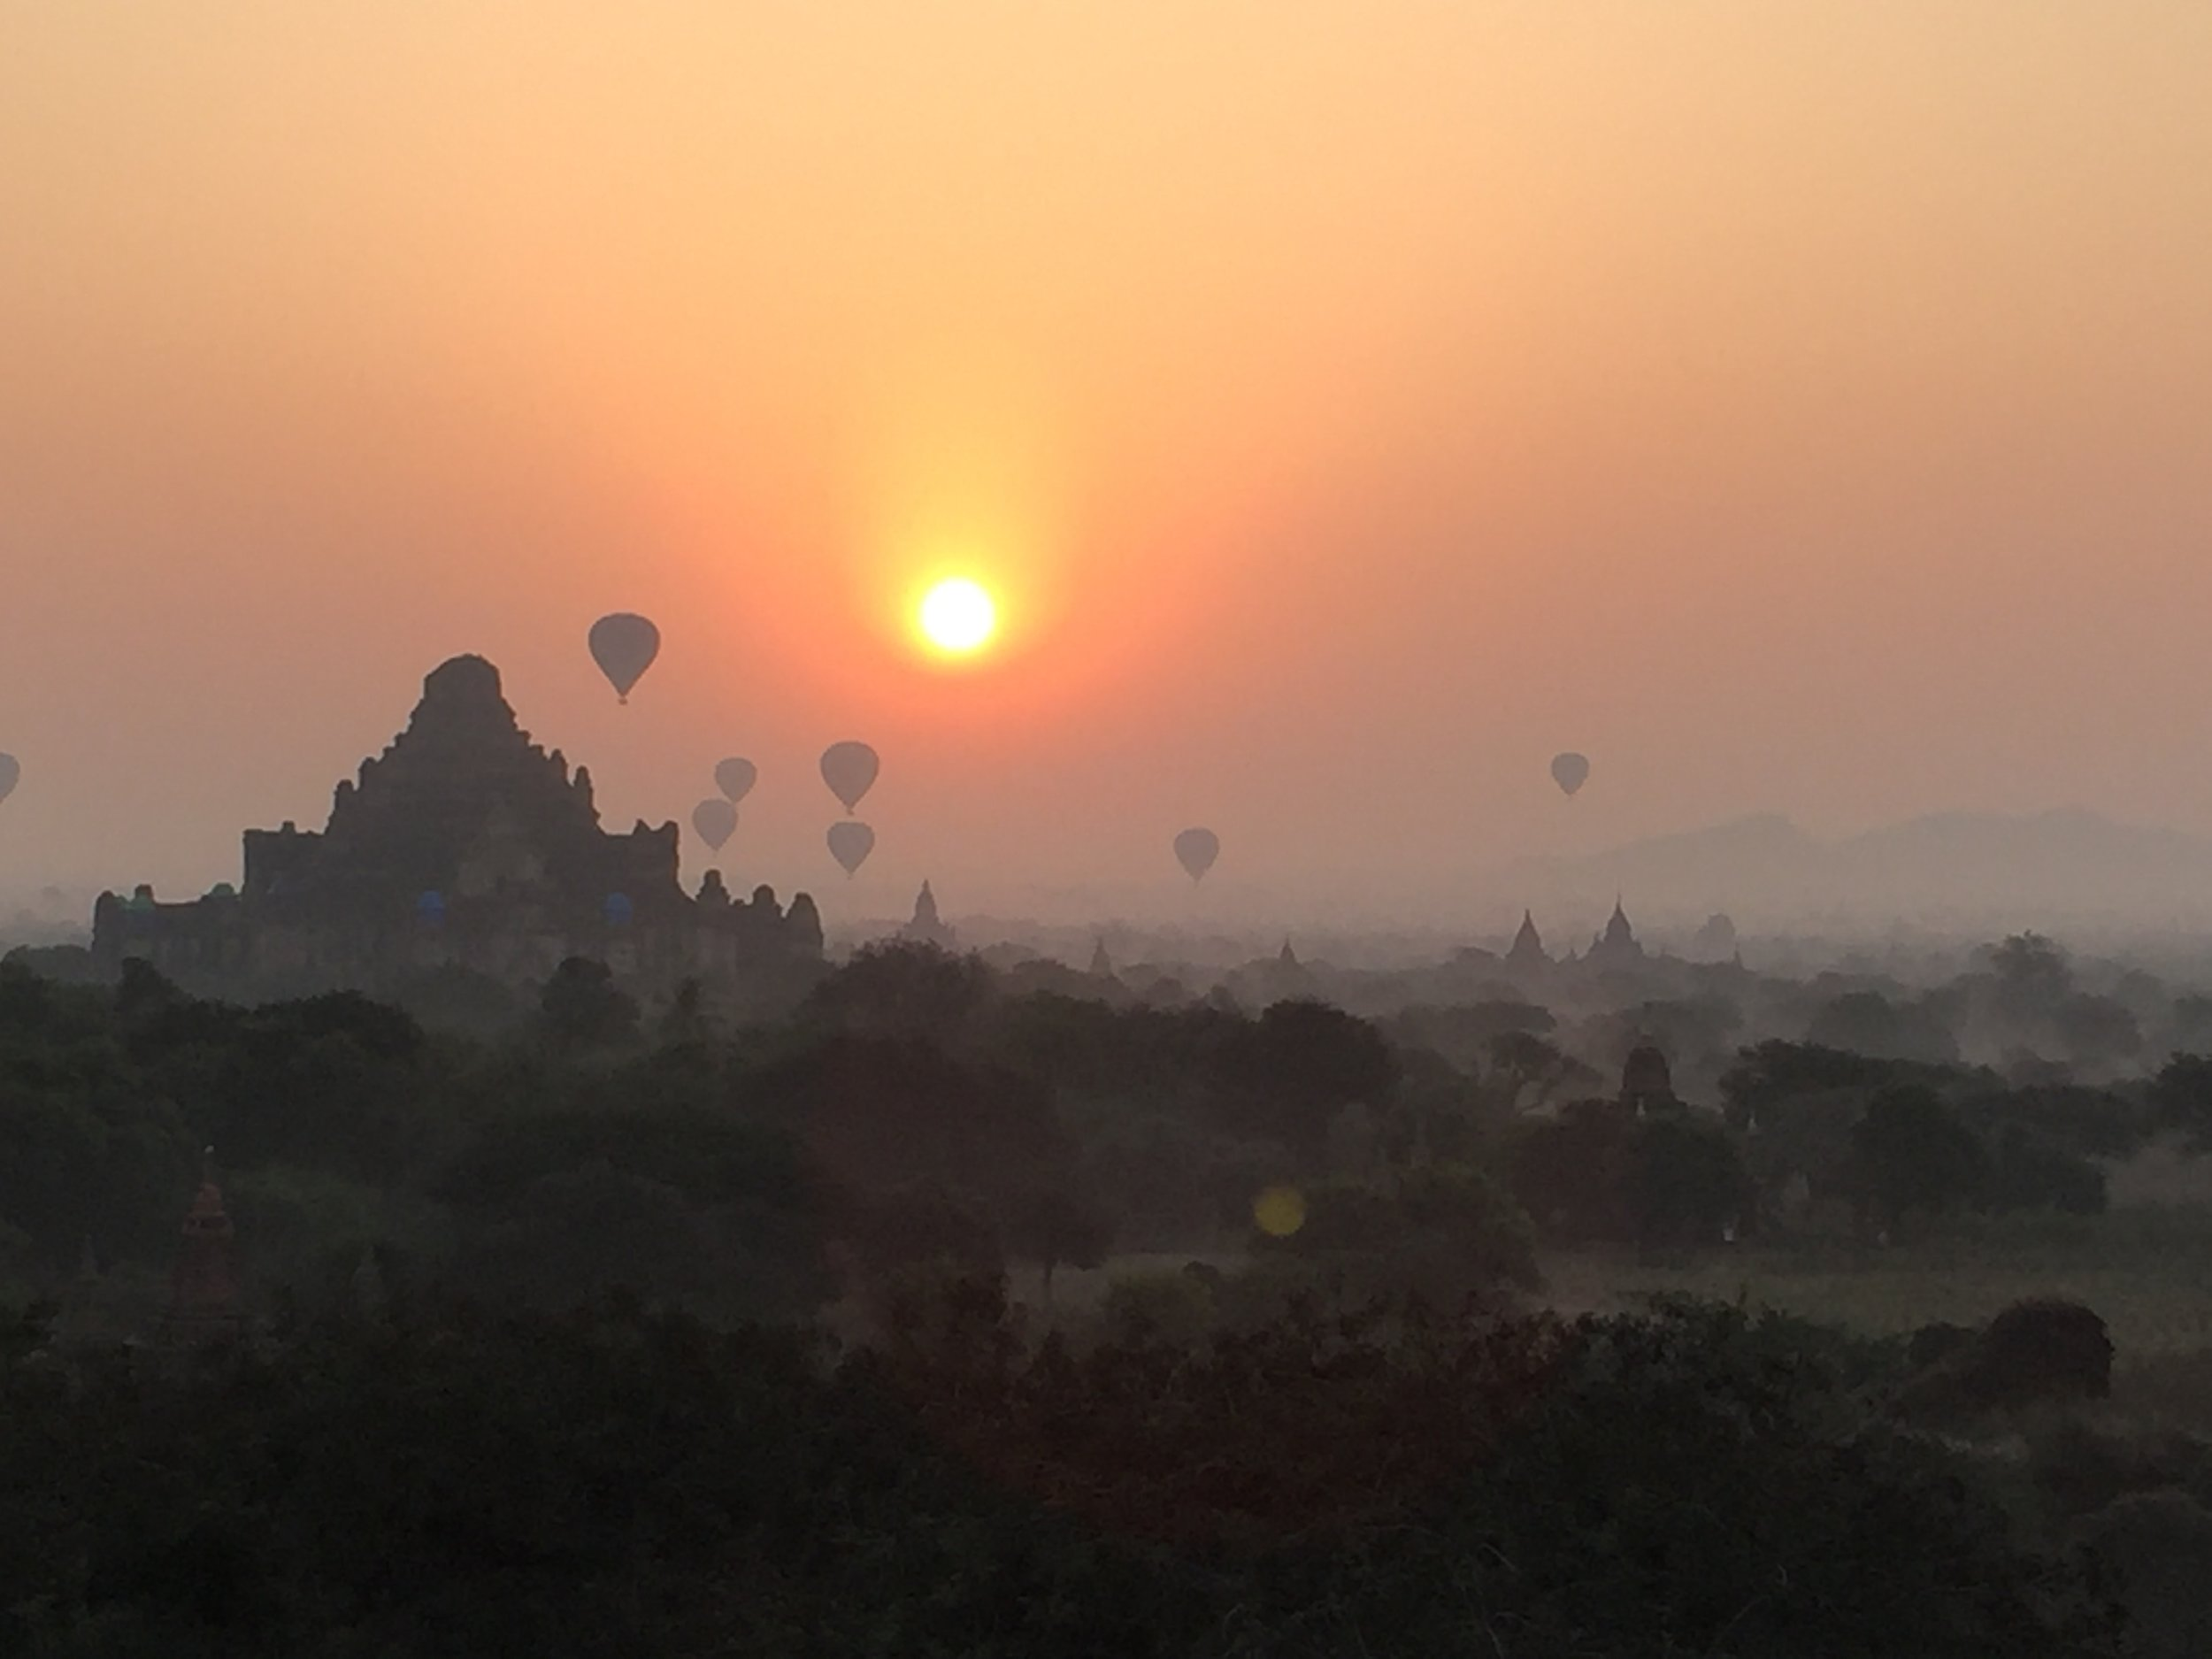 Our sunrise view from the top of Shwesandaw Pagoda.